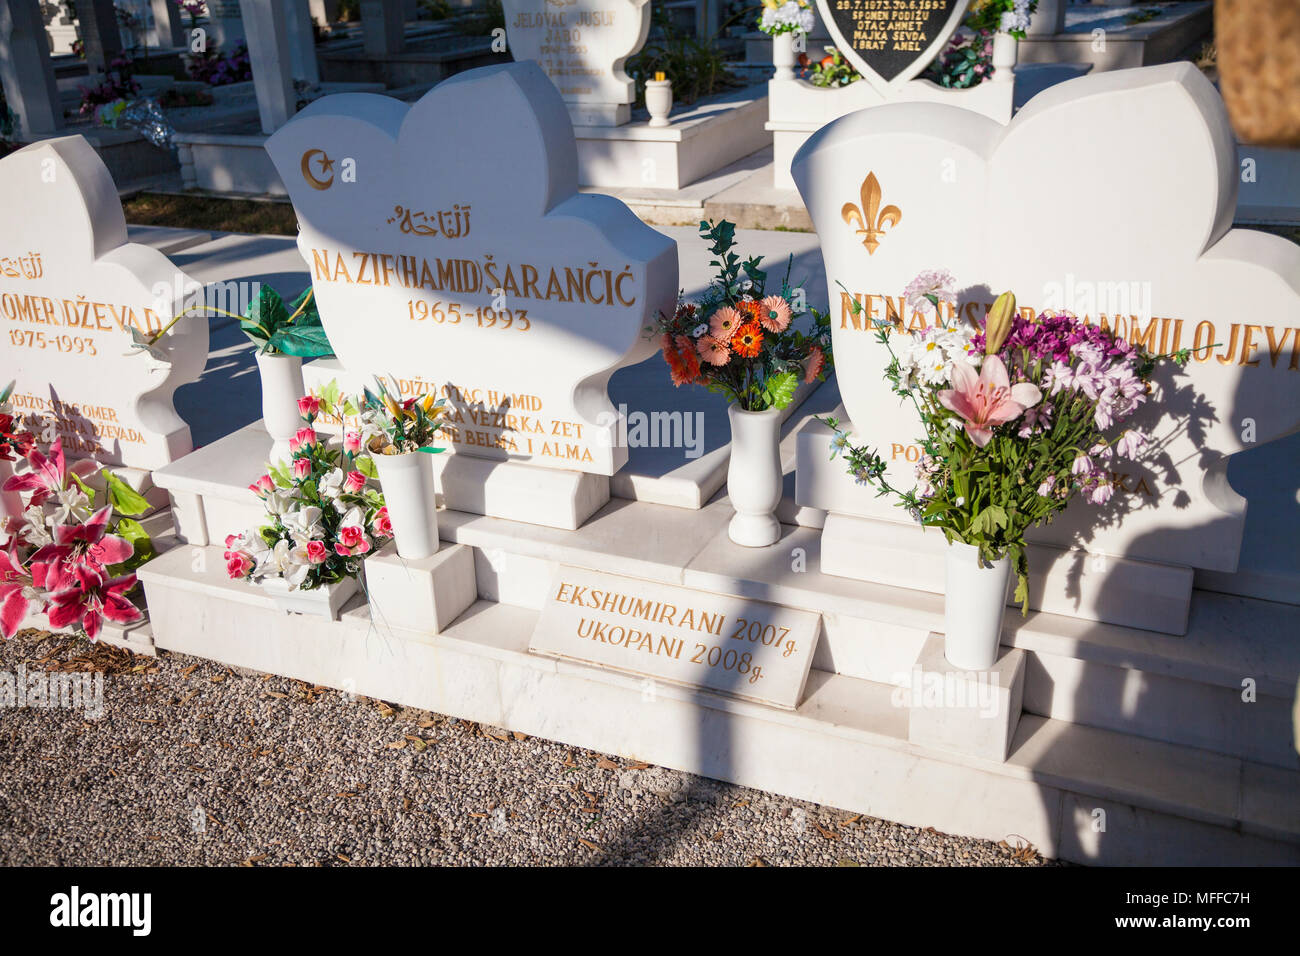 Graves of the victims of the 1993 Bosnian War in Mostar, Bosnia and Herzegovina - Stock Image